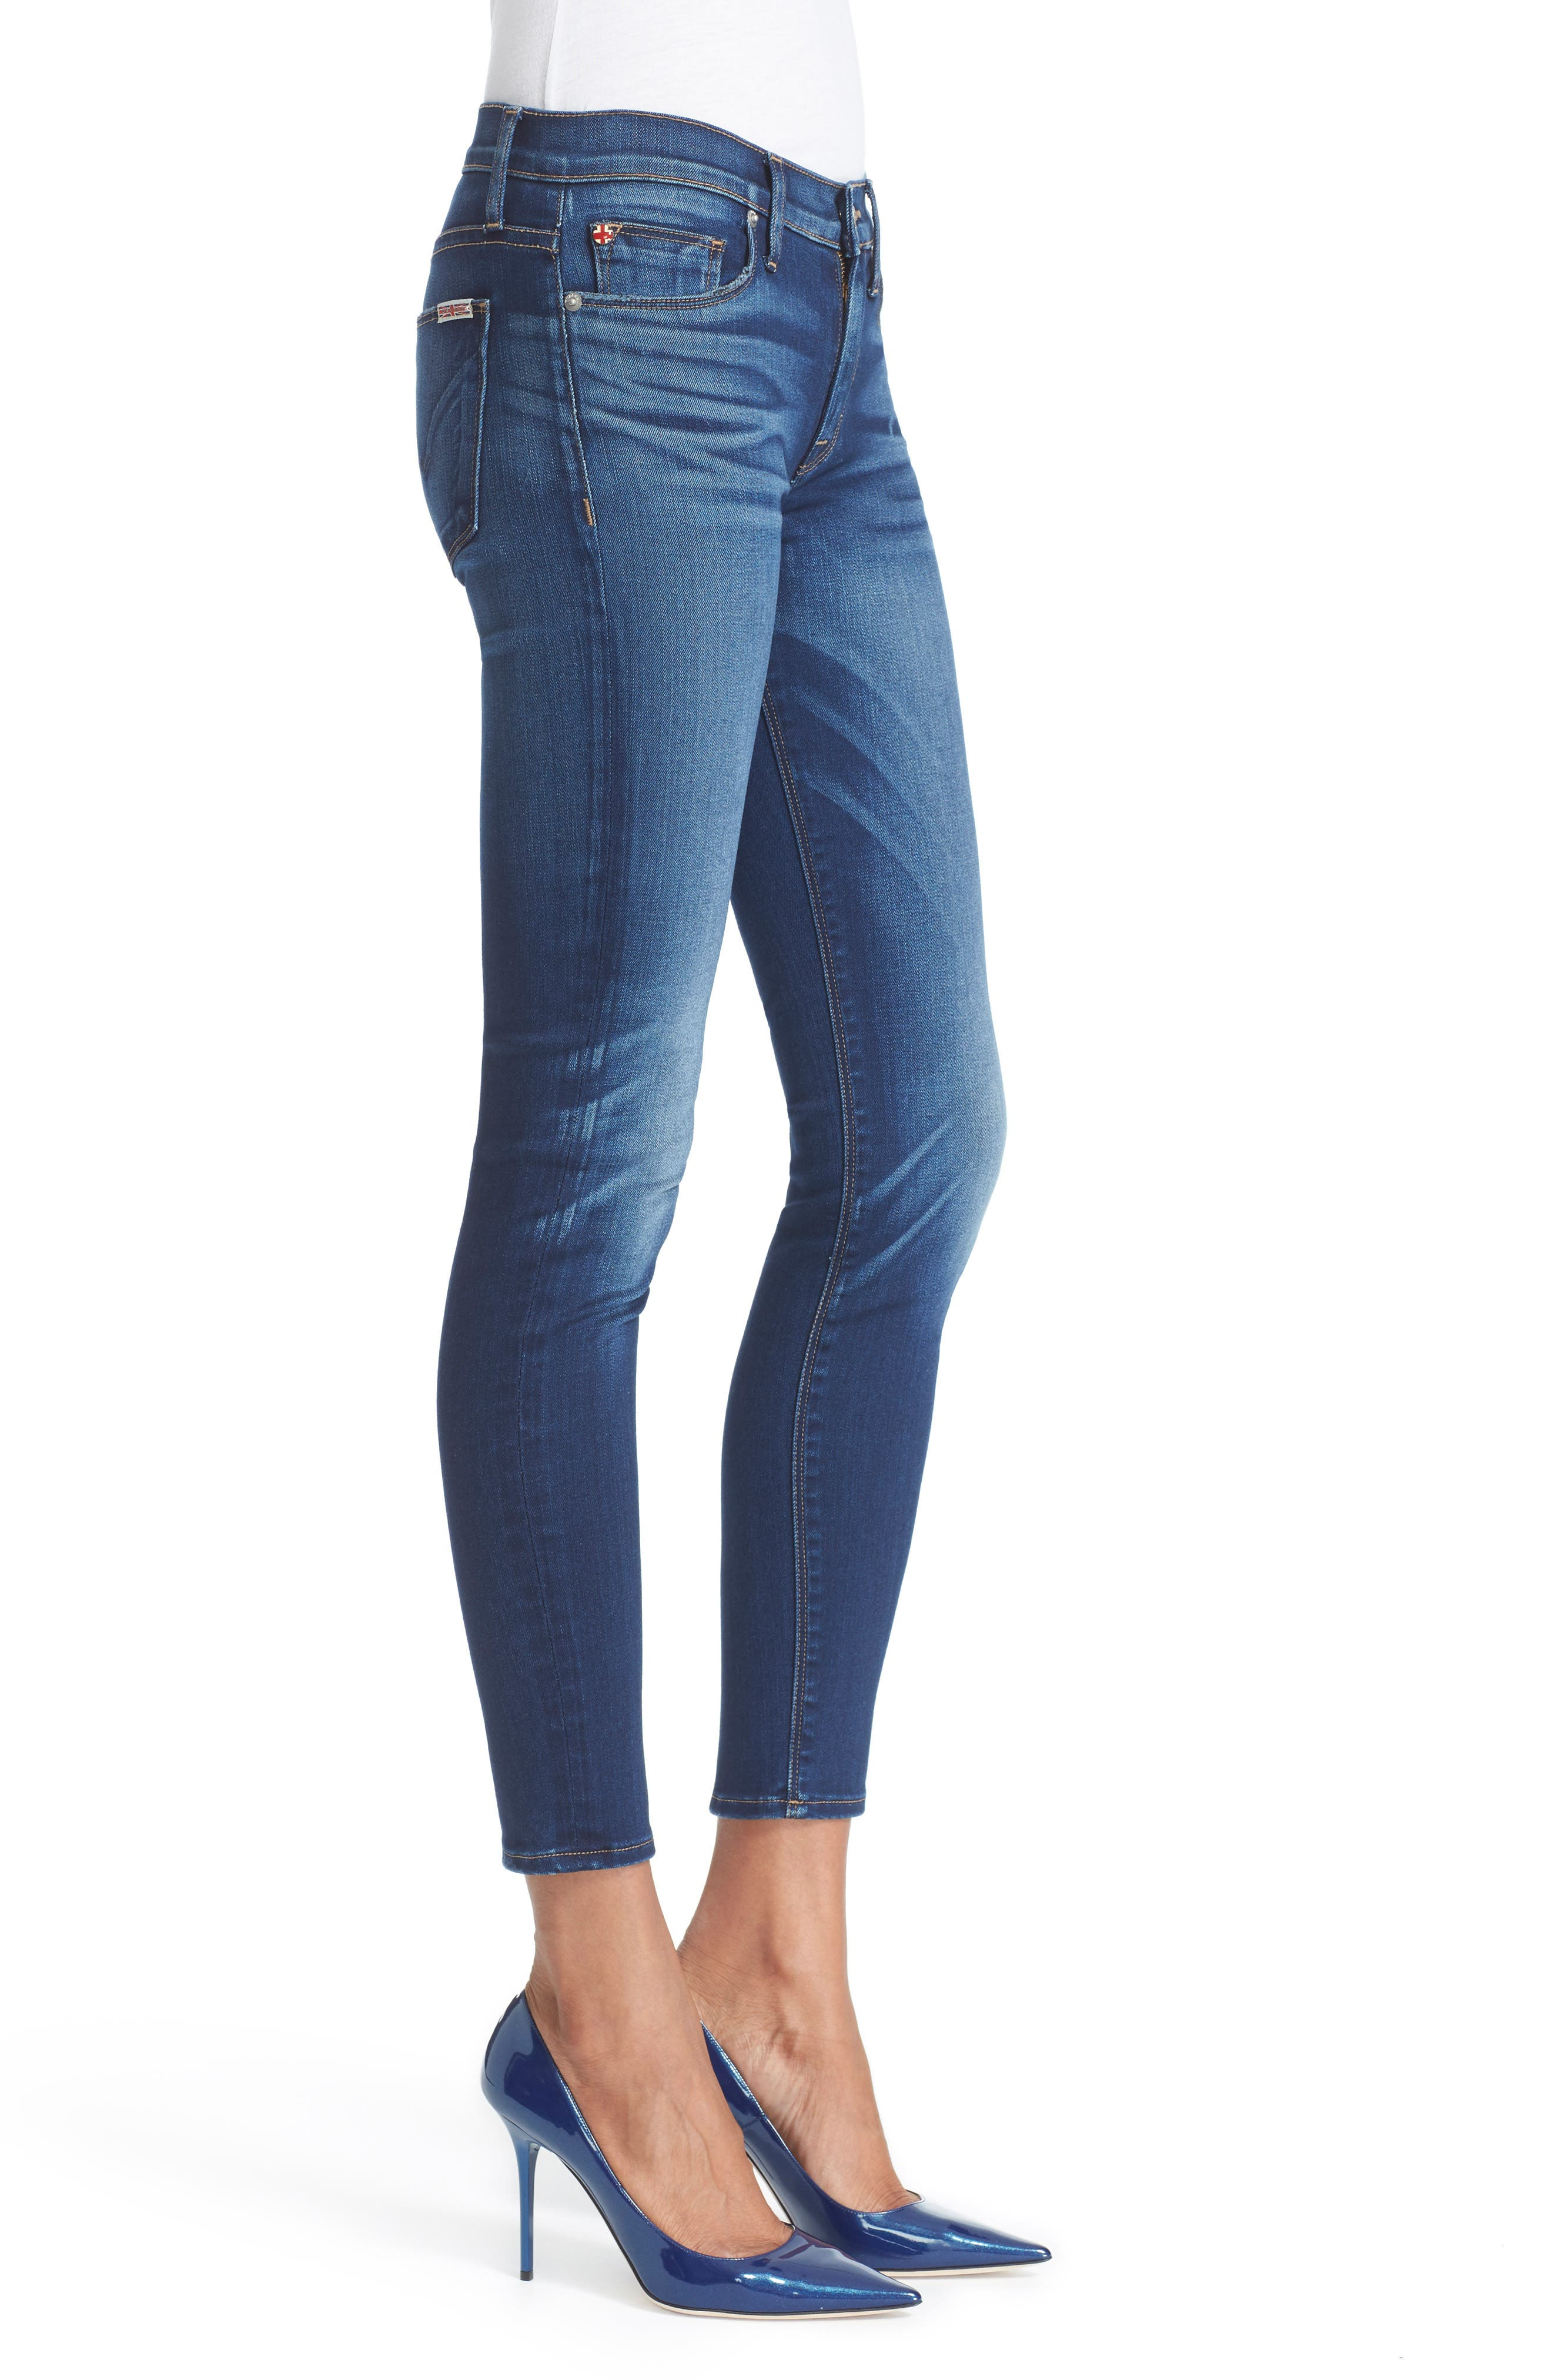 'Nico' Ankle Skinny Jeans,                             Alternate thumbnail 4, color,                             421